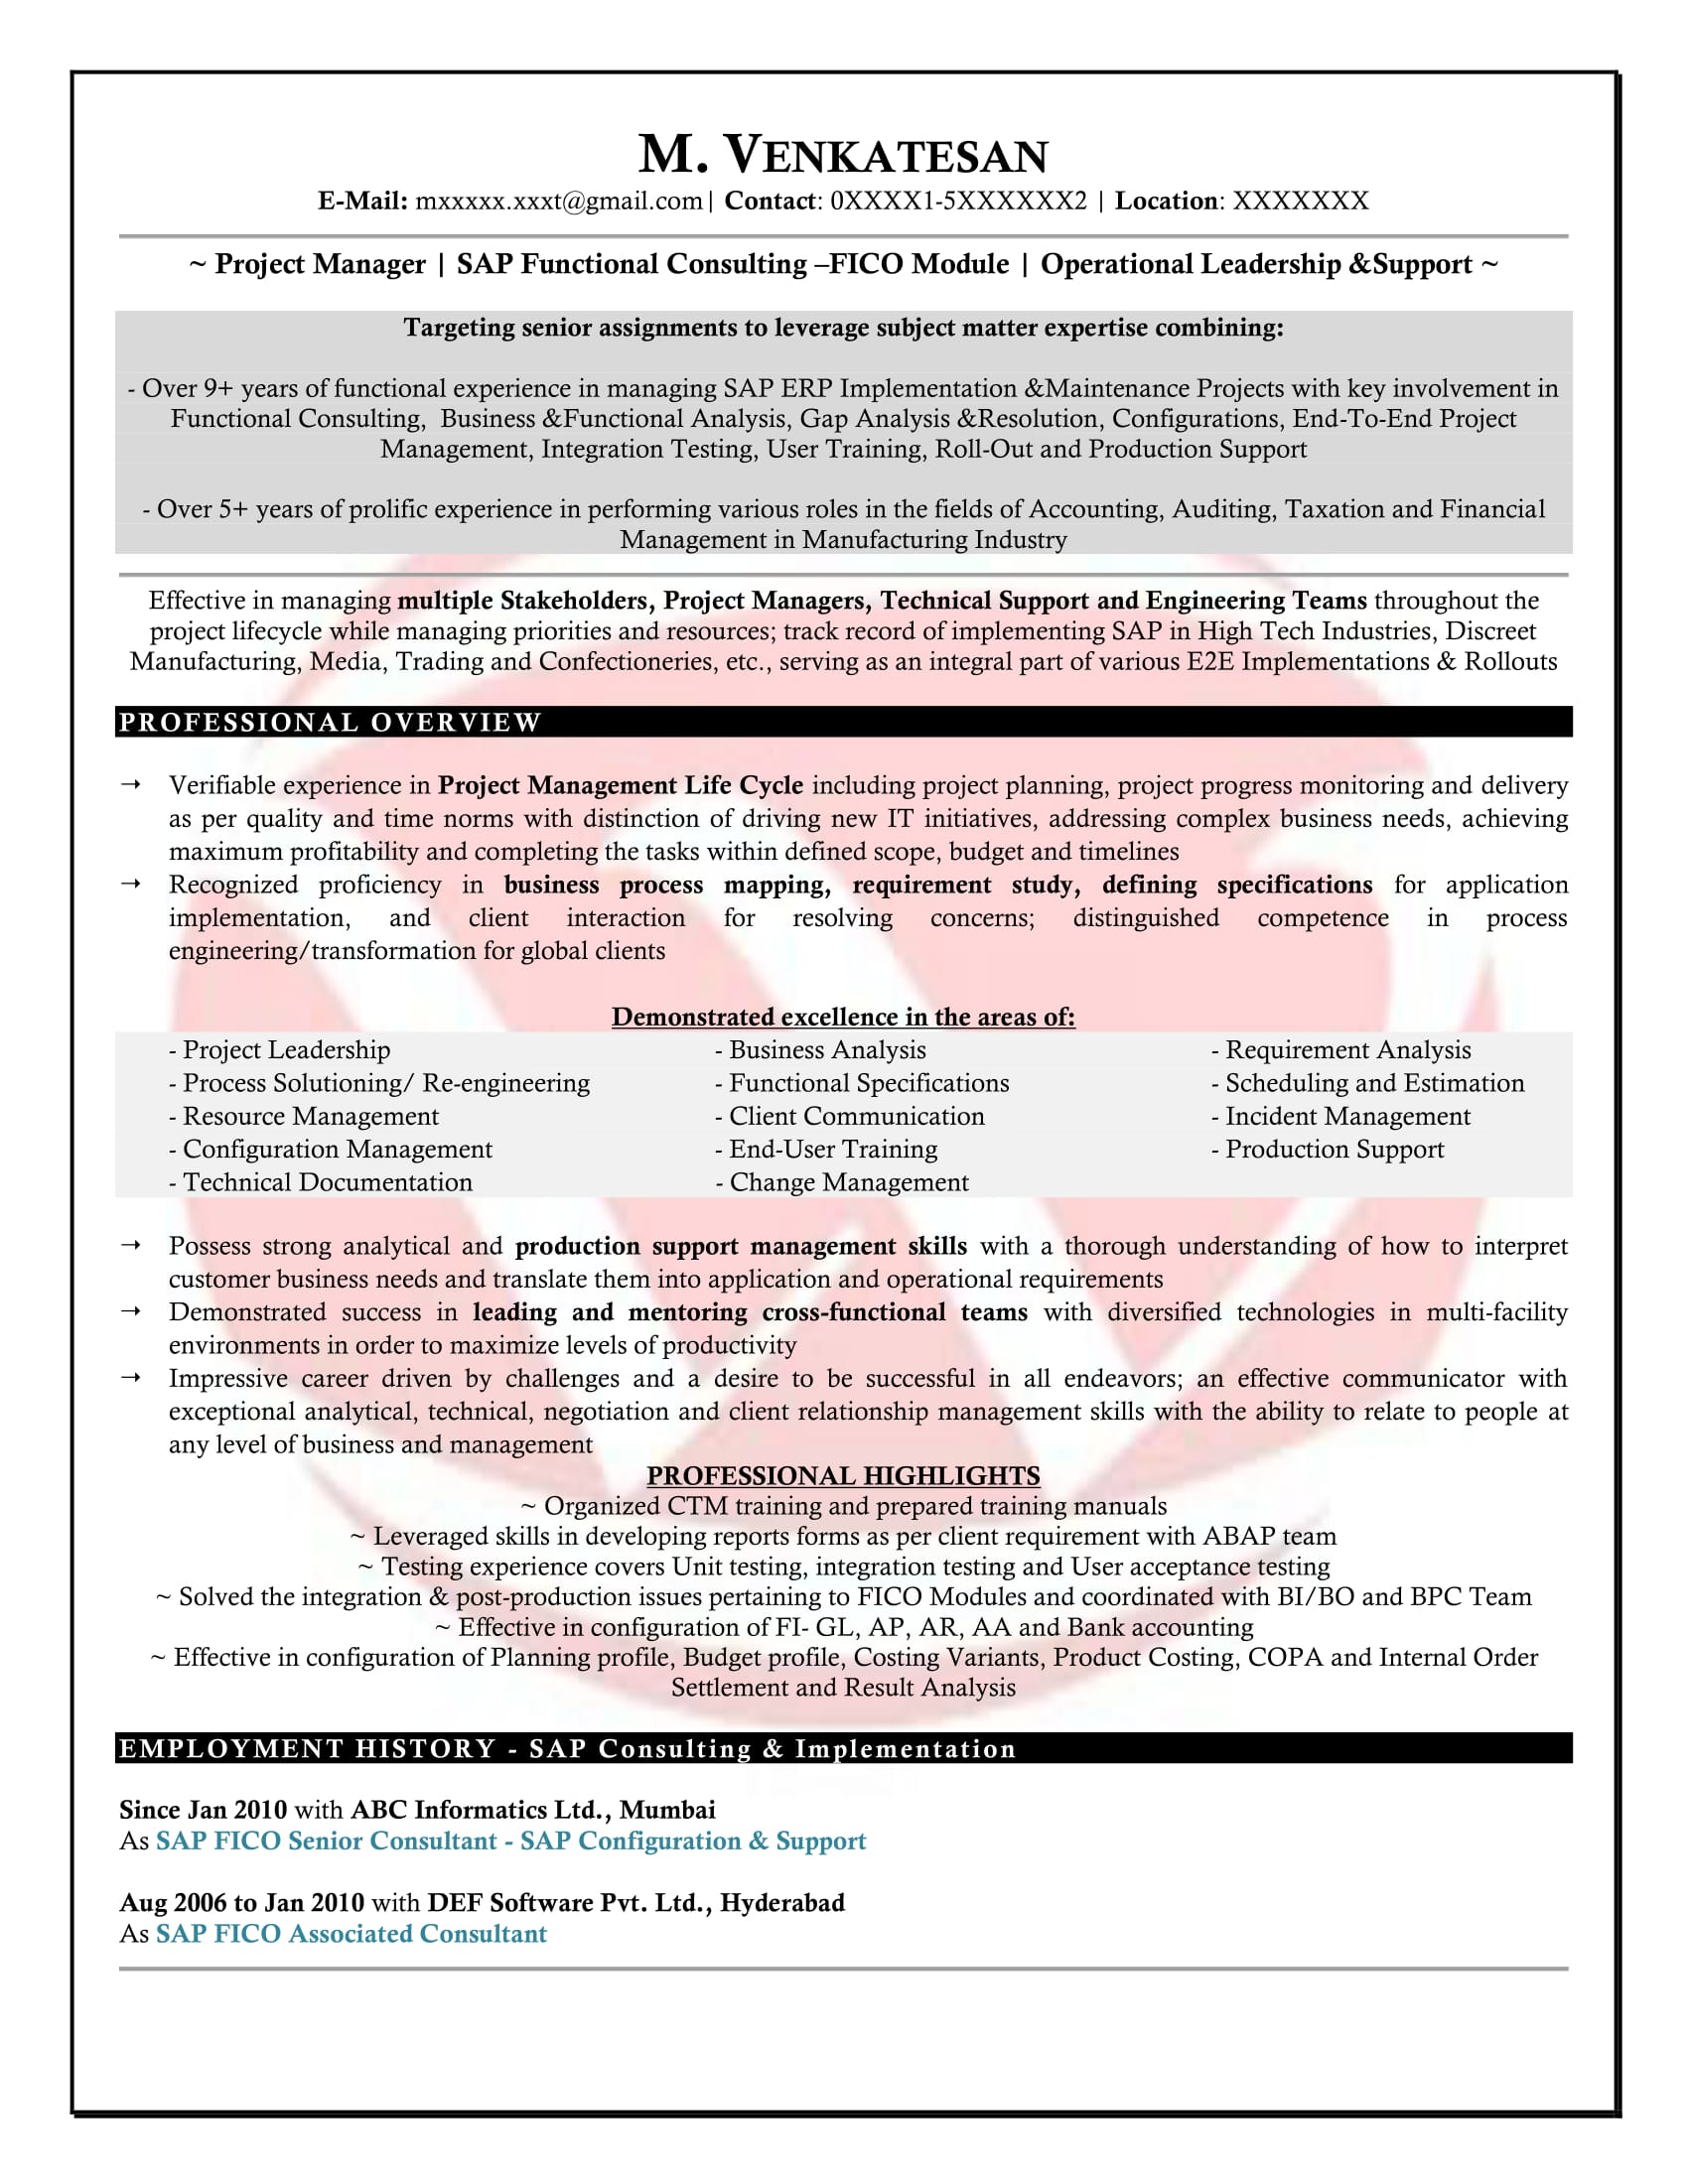 sap fico sample resumes resume format templates for consultant years experience outbound Resume Sample Resume For Sap Fico Consultant 3 Years Experience